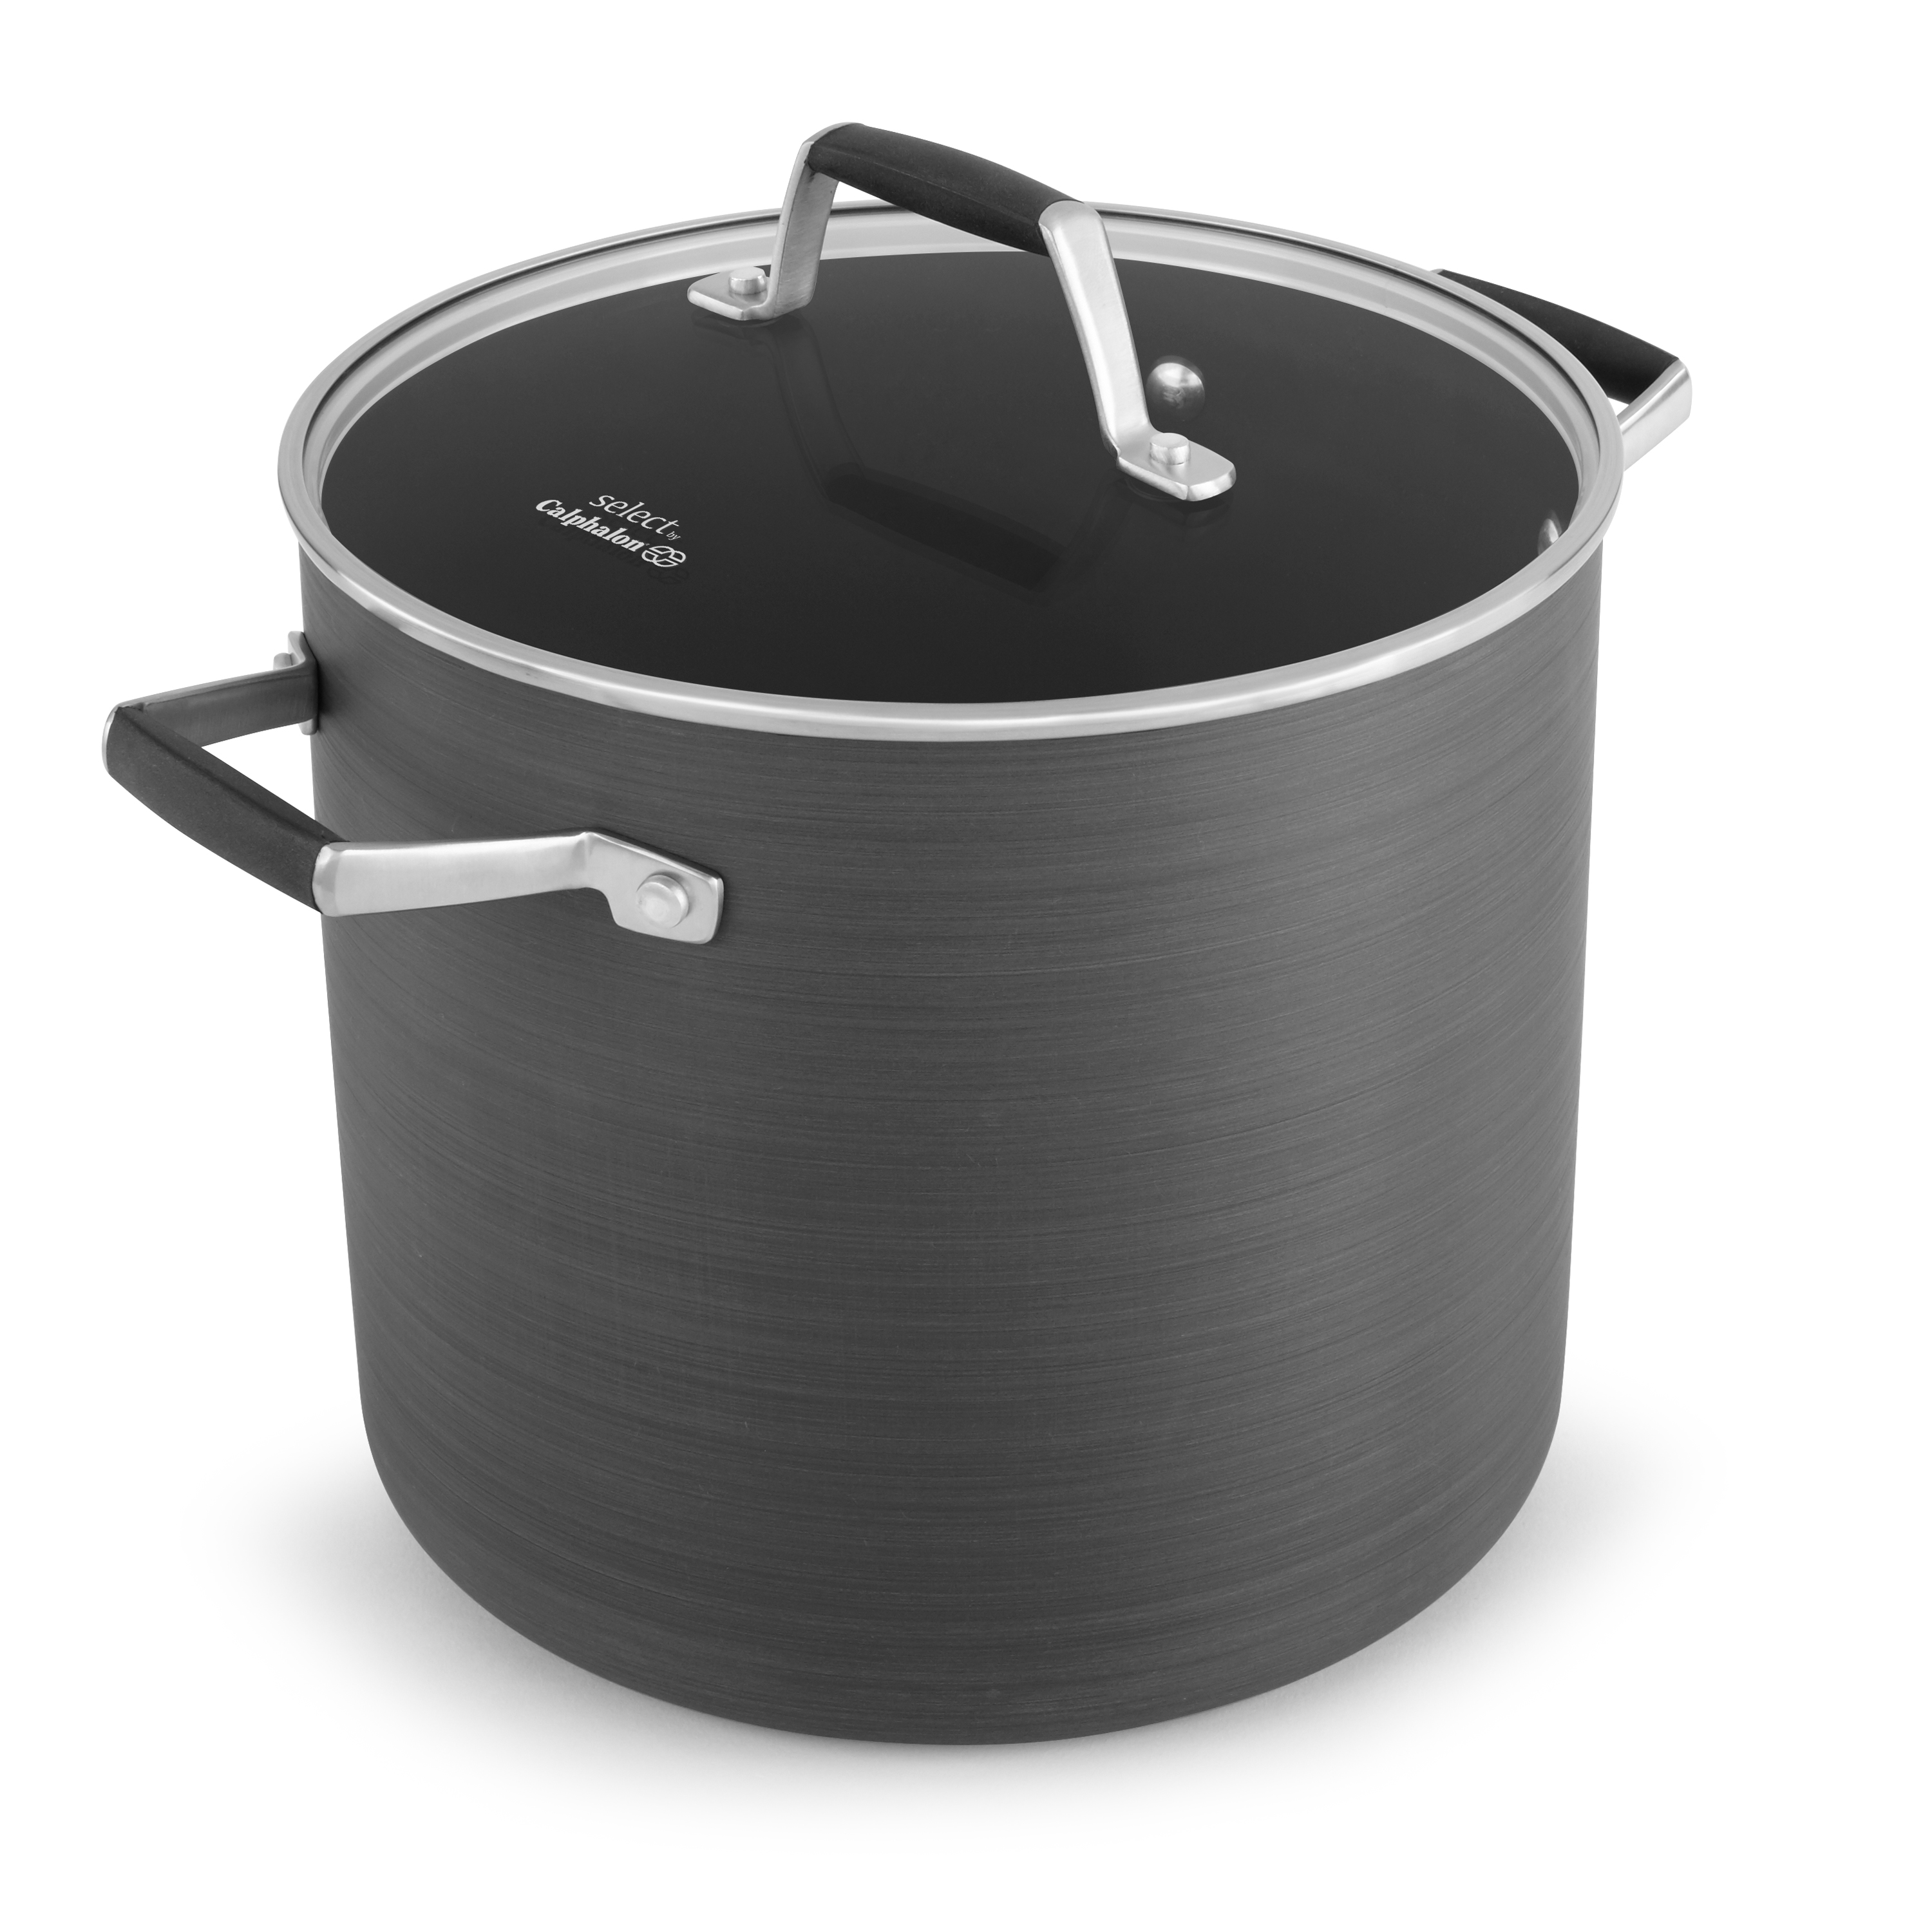 Calphalon Select 8 Quart Non-Stick Stock Pot with Cover, 1 Each